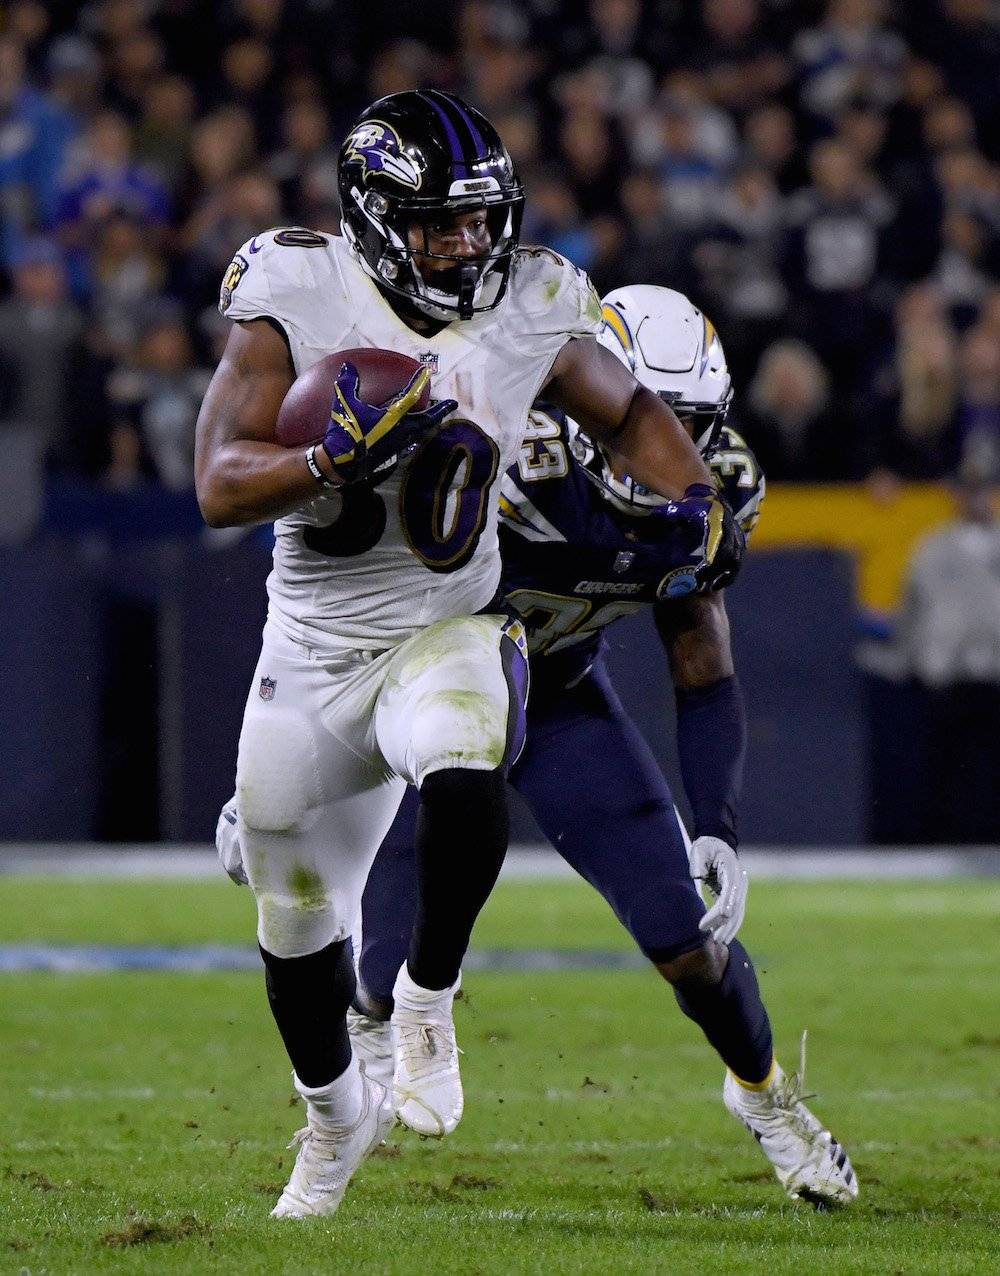 Ravens 22-10 Chargers / Getty Images